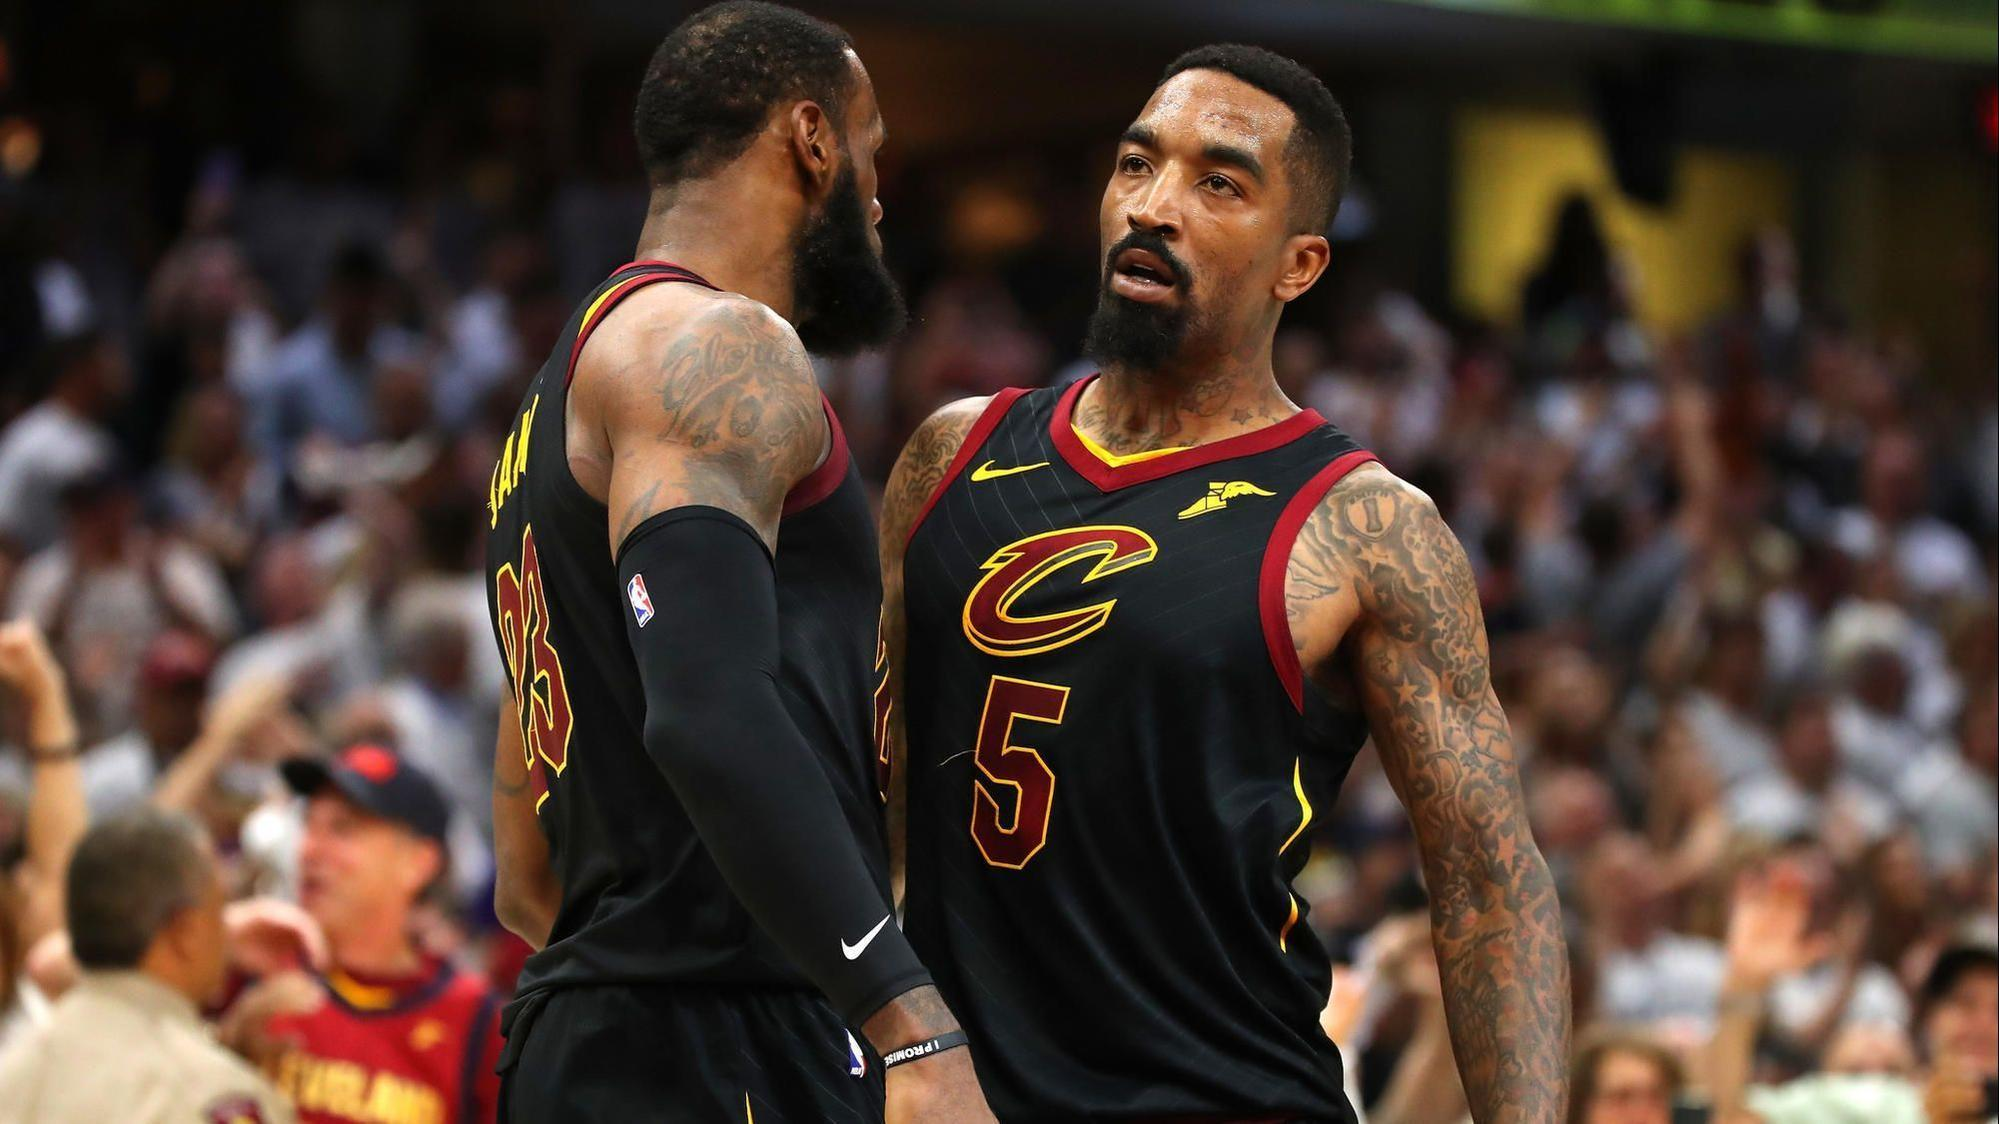 Cavaliers' J.R. Smith on playing with LeBron James: 'It's a gift and a curse' - Chicago Tribune